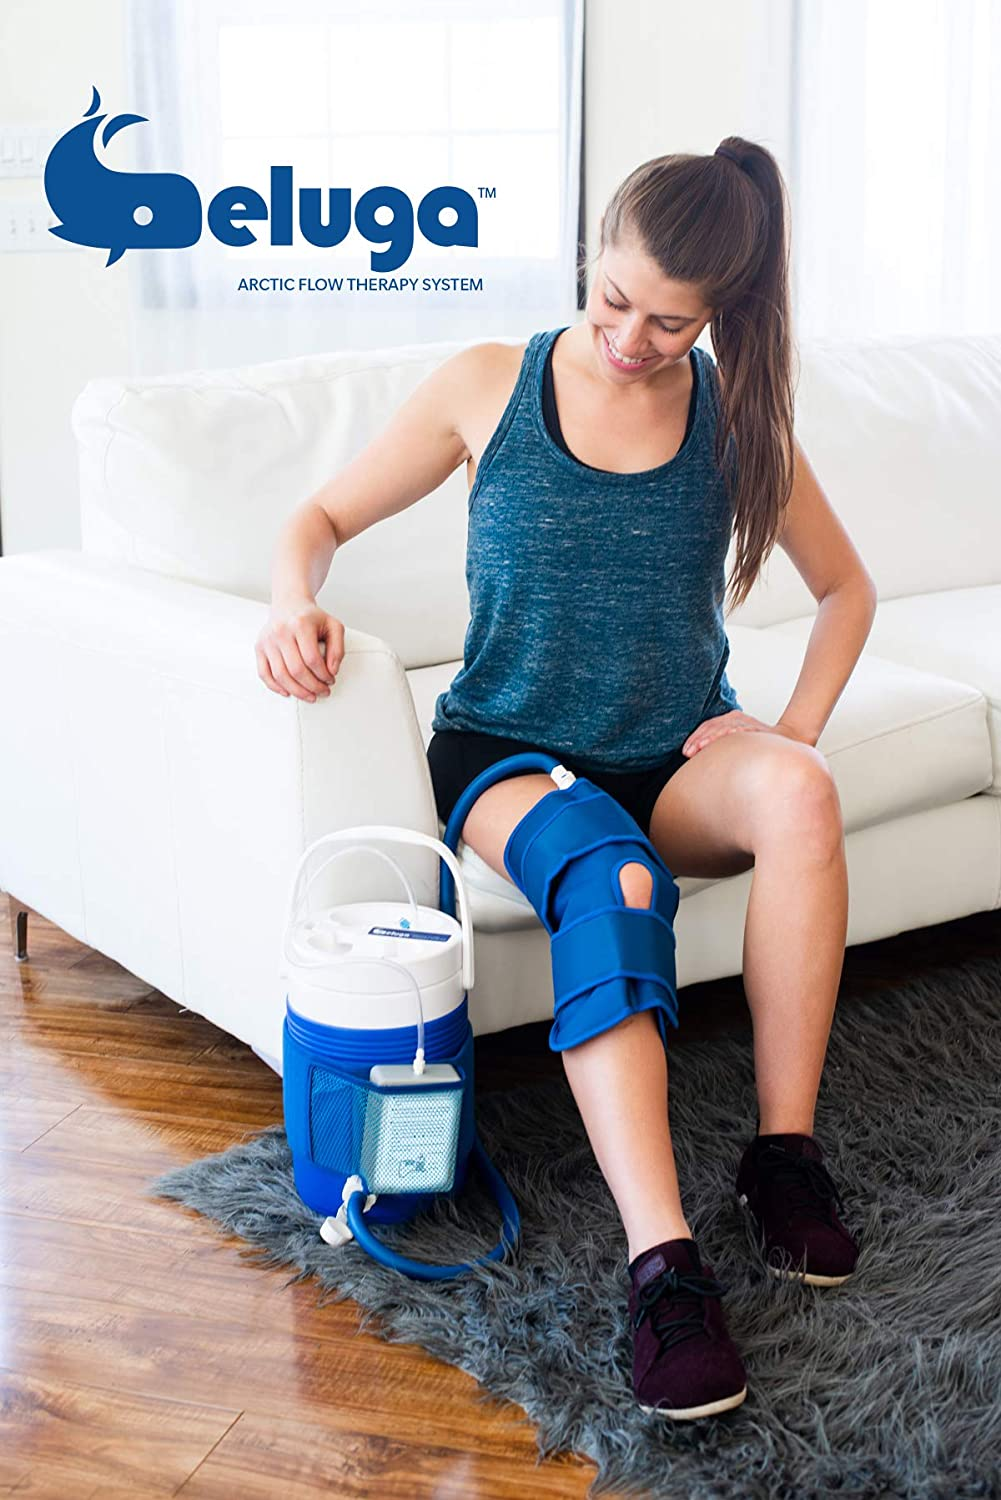 Beluga Arctic Flow Therapy System w/Knee Wrap, Powered | Ice Water Circulating Cold Therapy Machine for Knee After Surgery or Injury